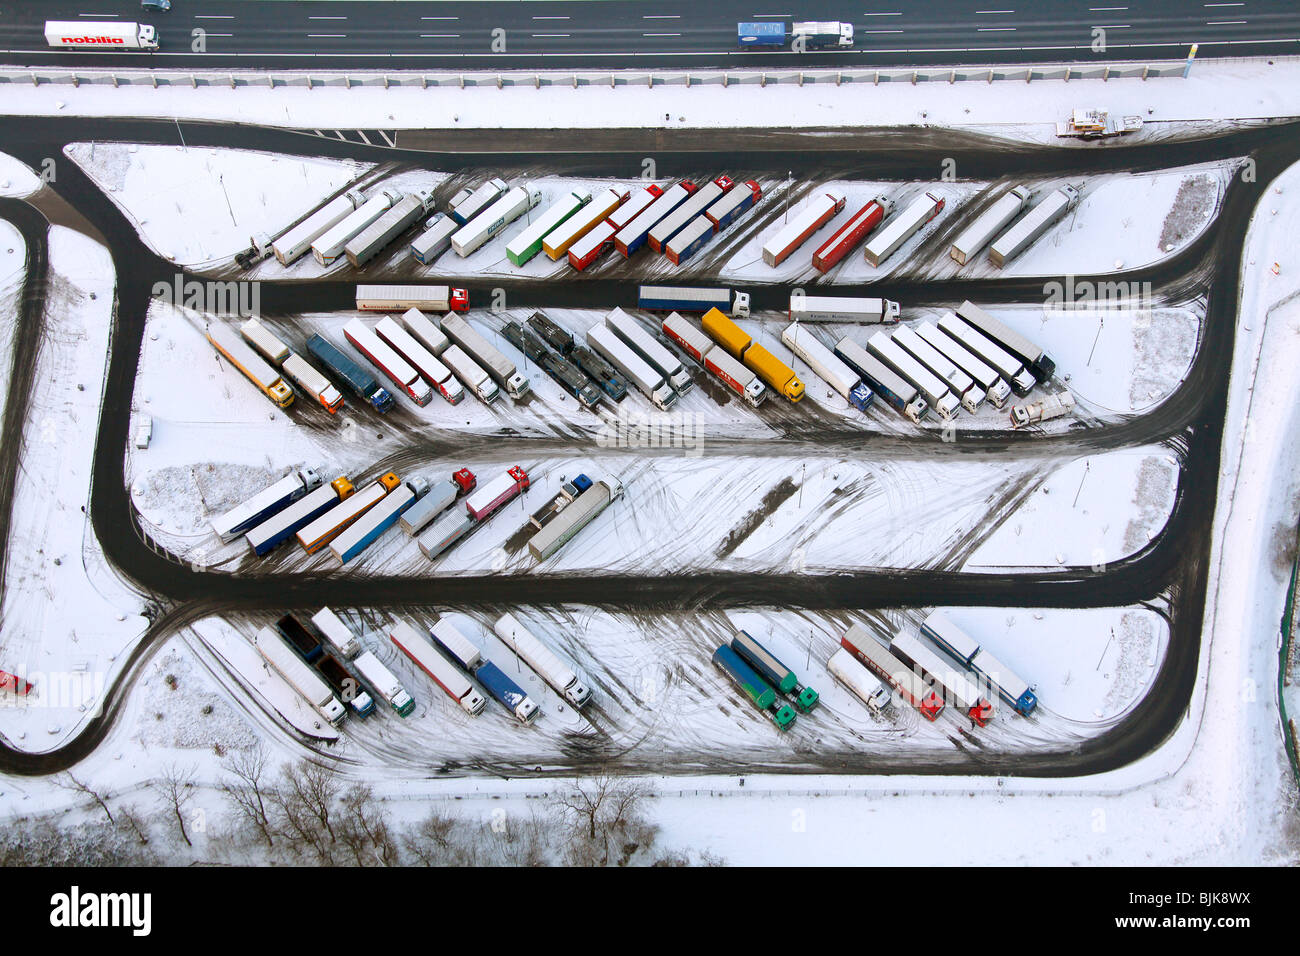 Aerial photo, Rhynern, A2 Autobahn, highway petrol station and rest stop, snow-covered truck parking area, Hamm, Stock Photo